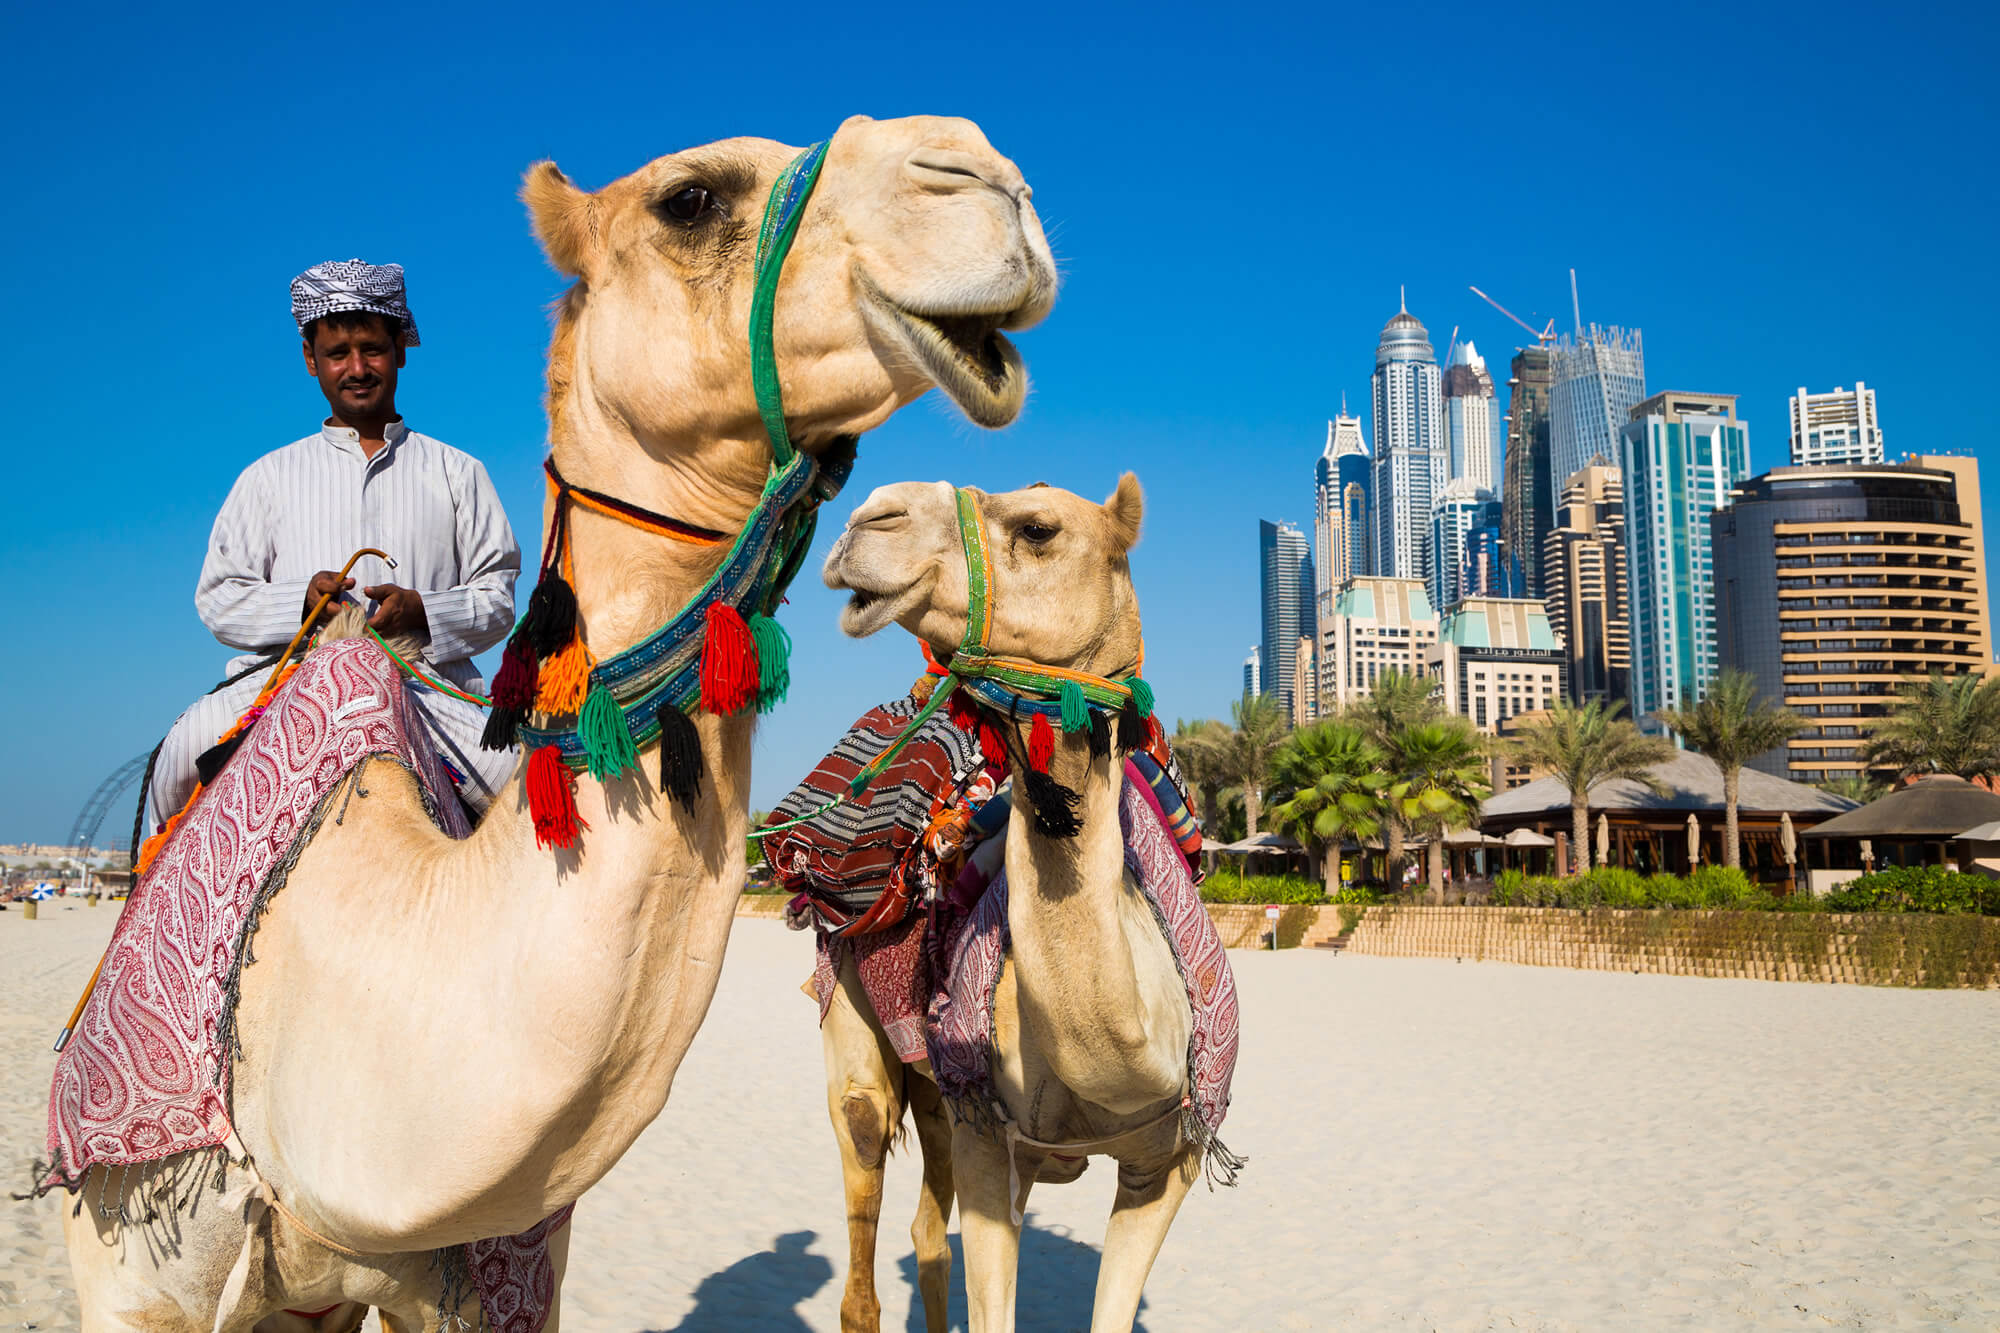 Camels and Dubai Skyscrapers, UAE